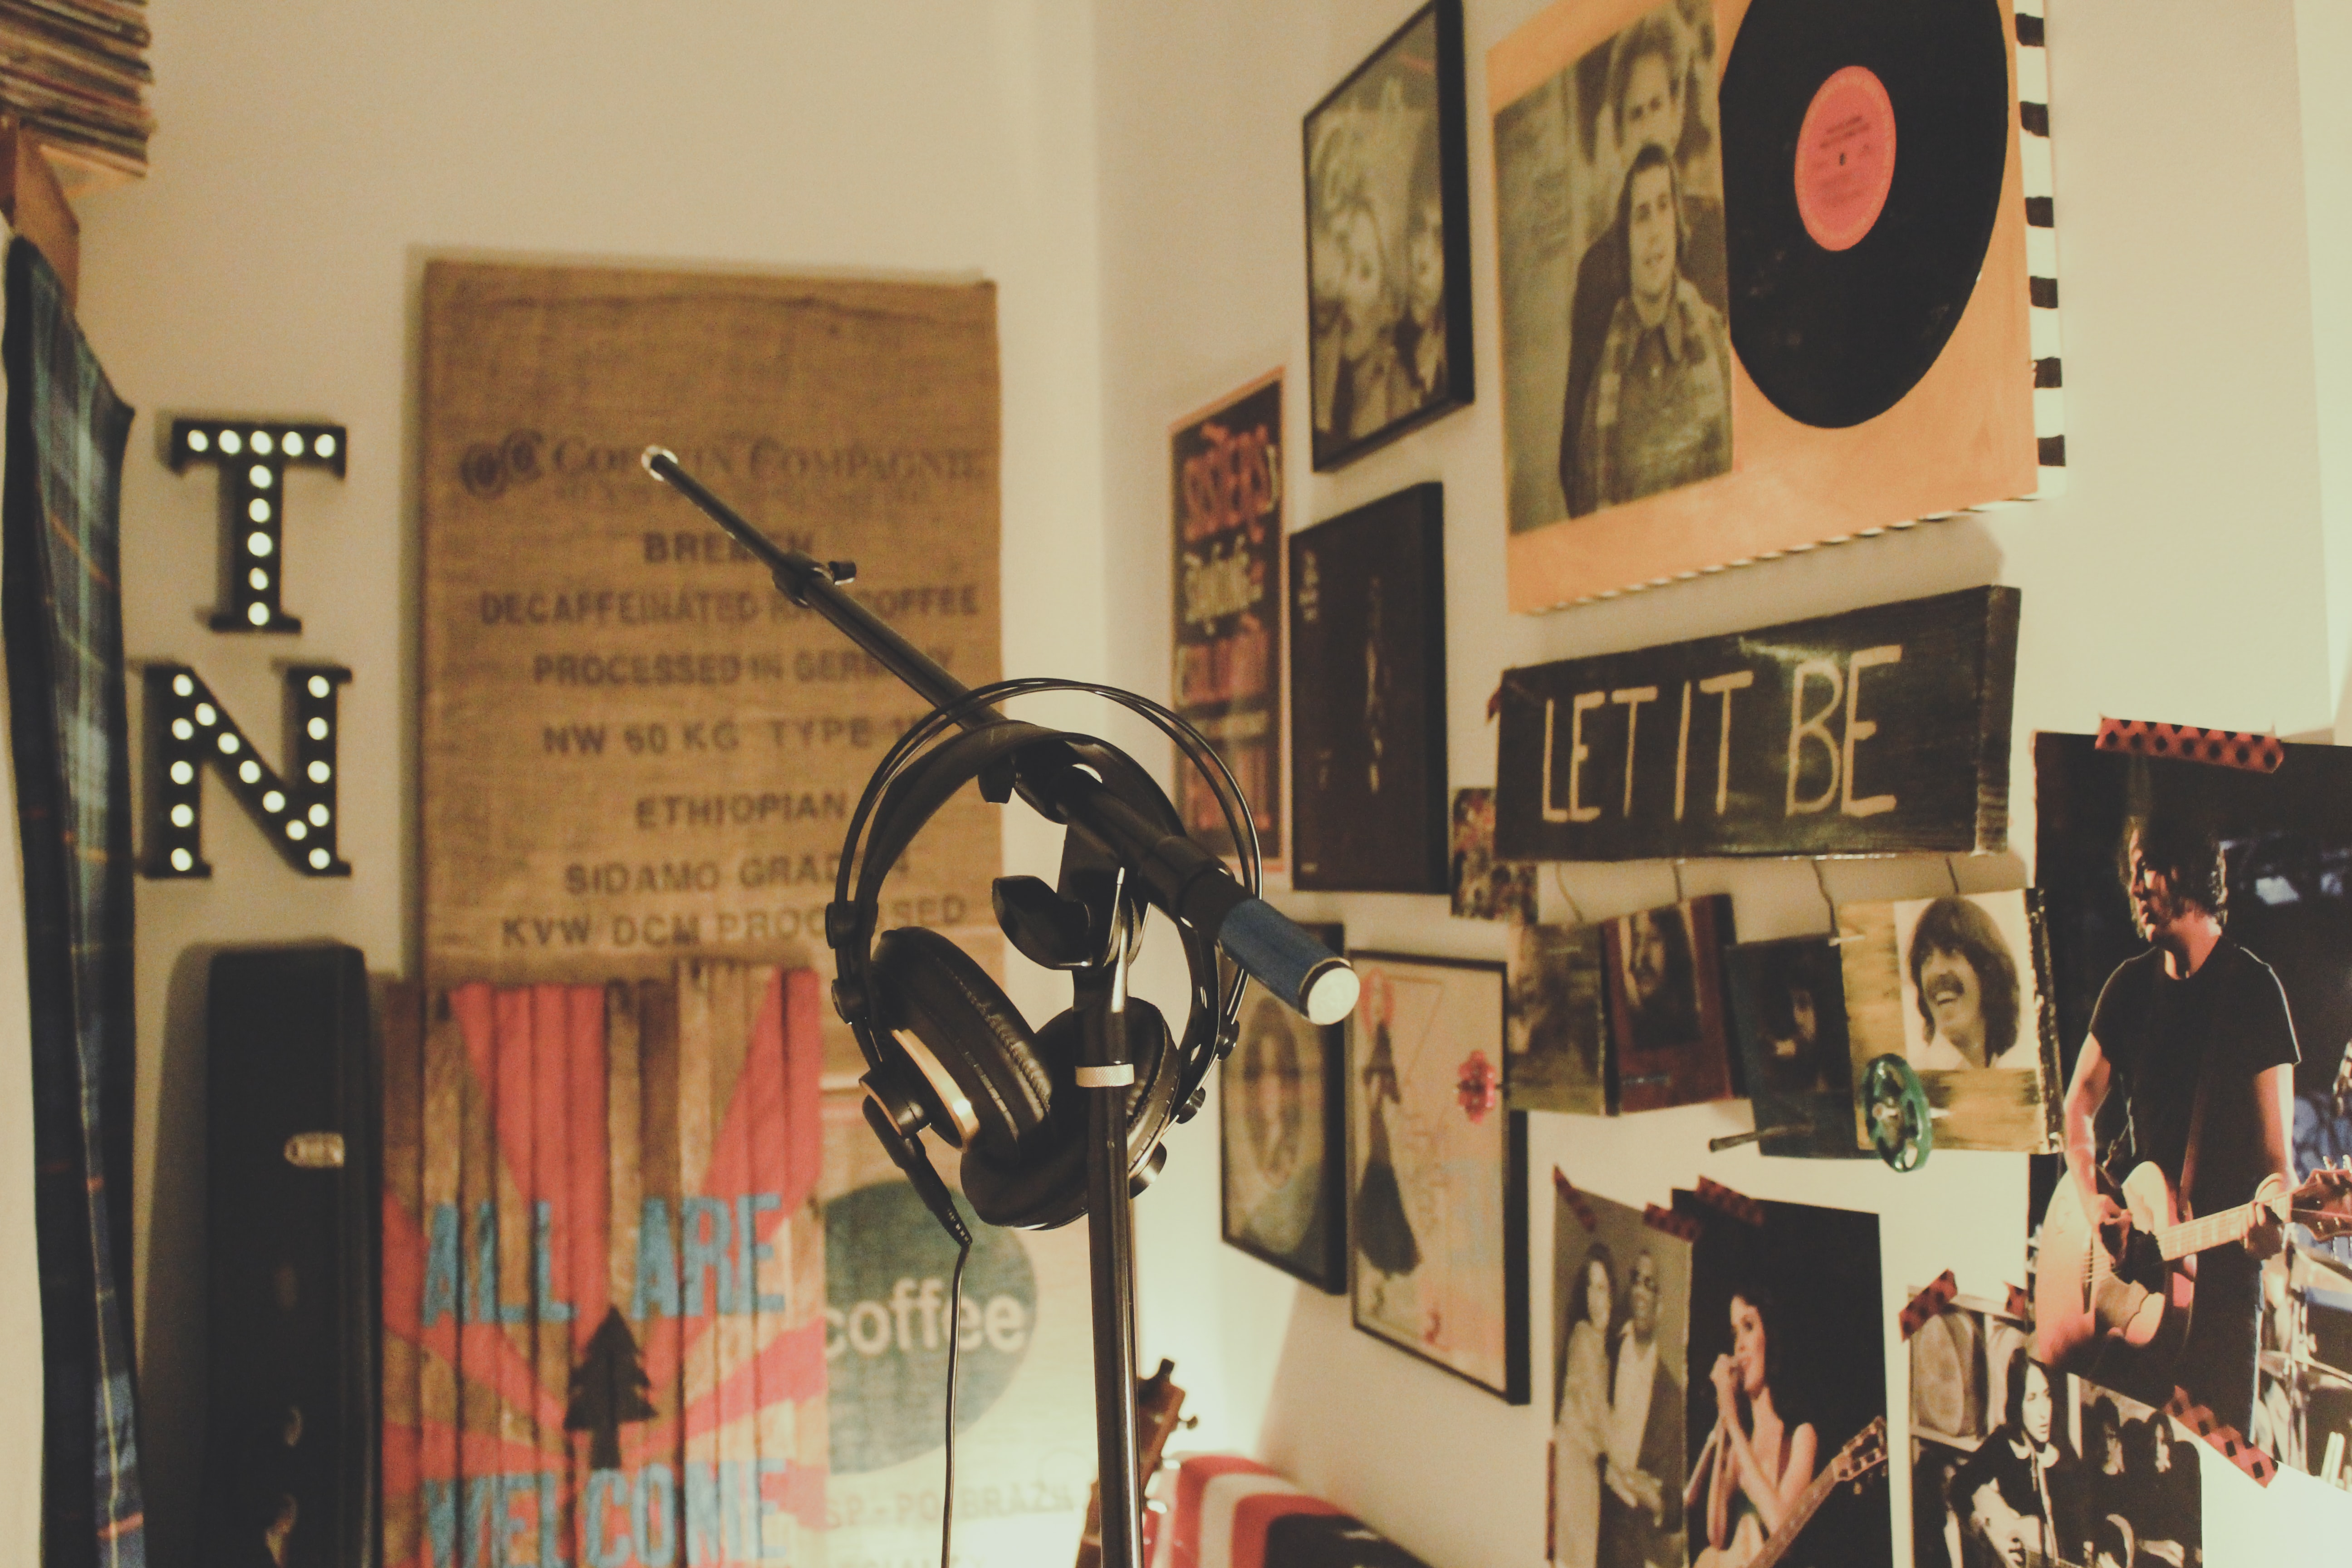 Headphones hanging from a microphone stand in a room with falls covered with music posters